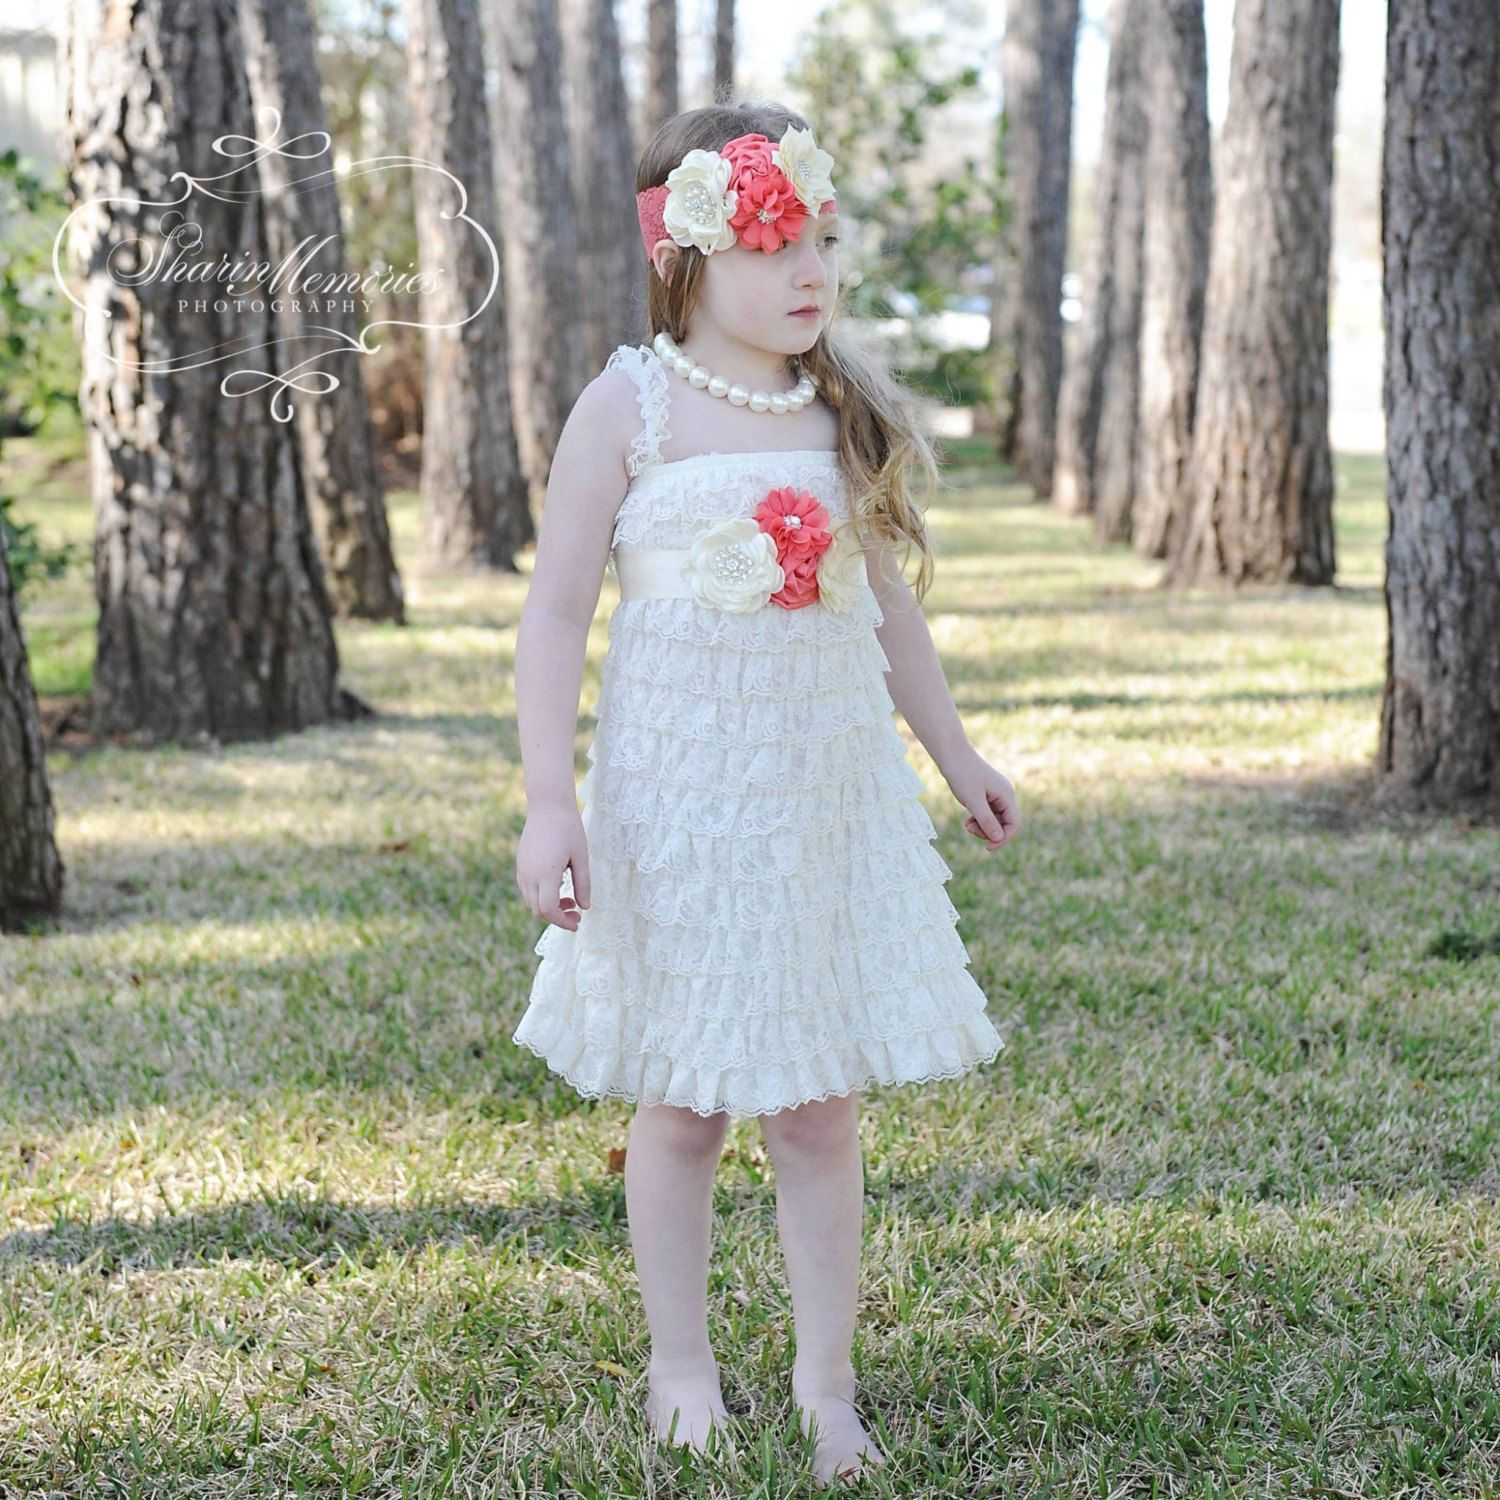 Lace dress for baby girl  Ivory Lace Dress Baby RomperBaby Girl RomperGirl Lace RomperLace